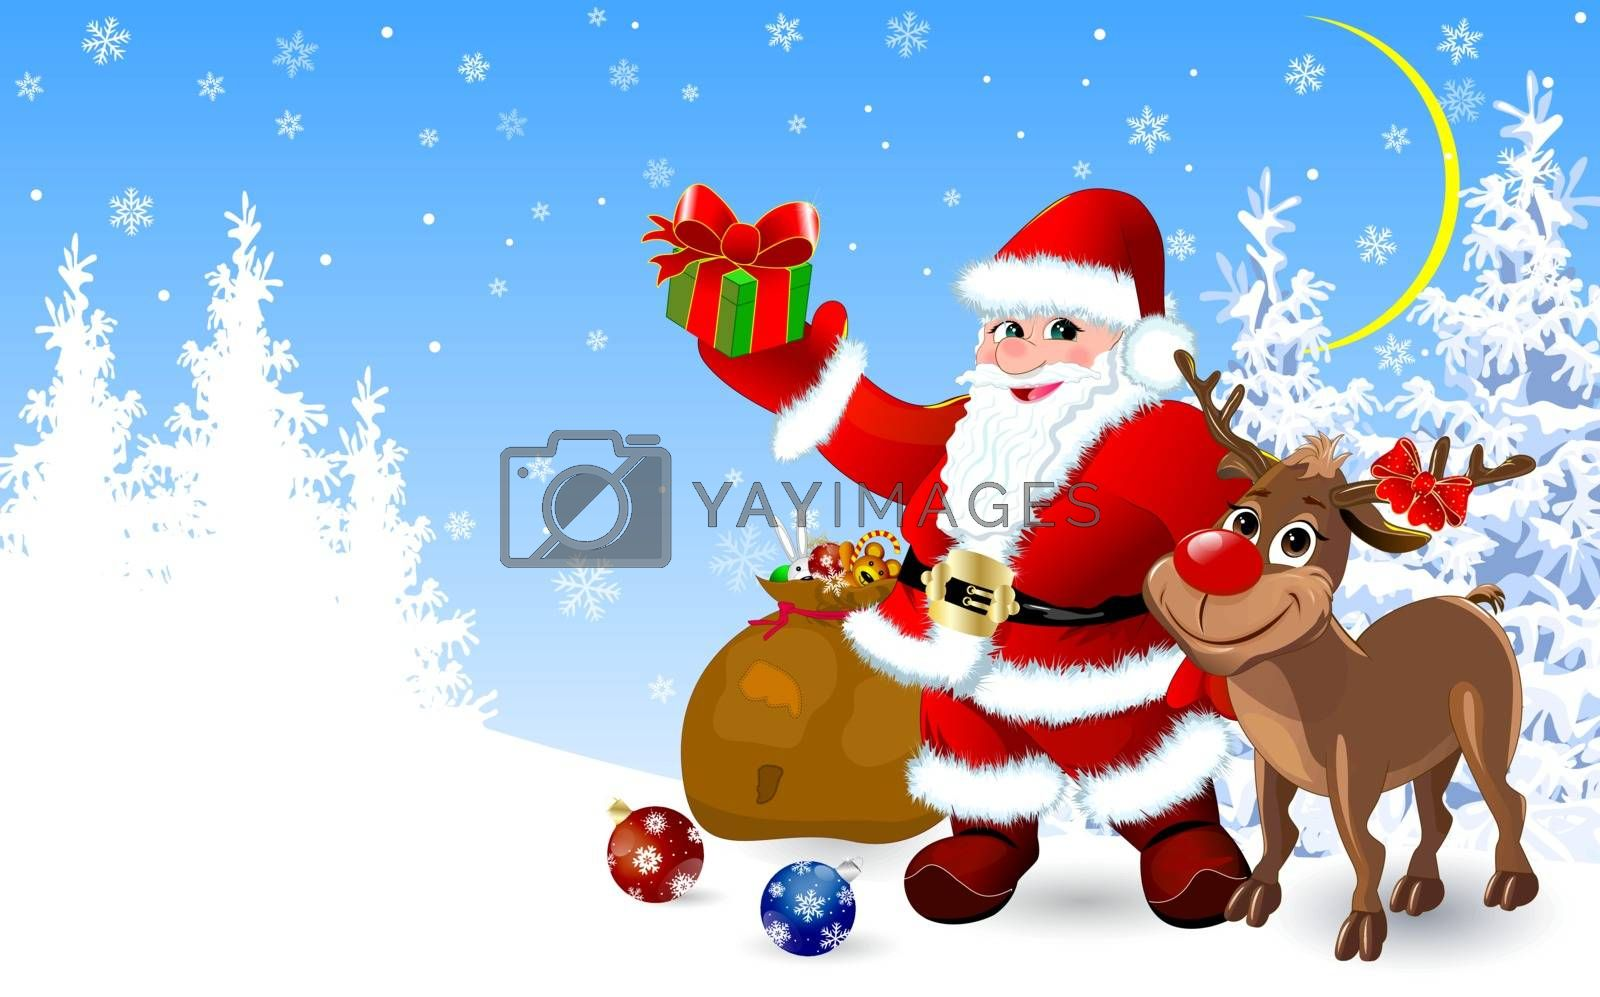 Santa Claus and a reindeer in the winter forest with gifts for Christmas.